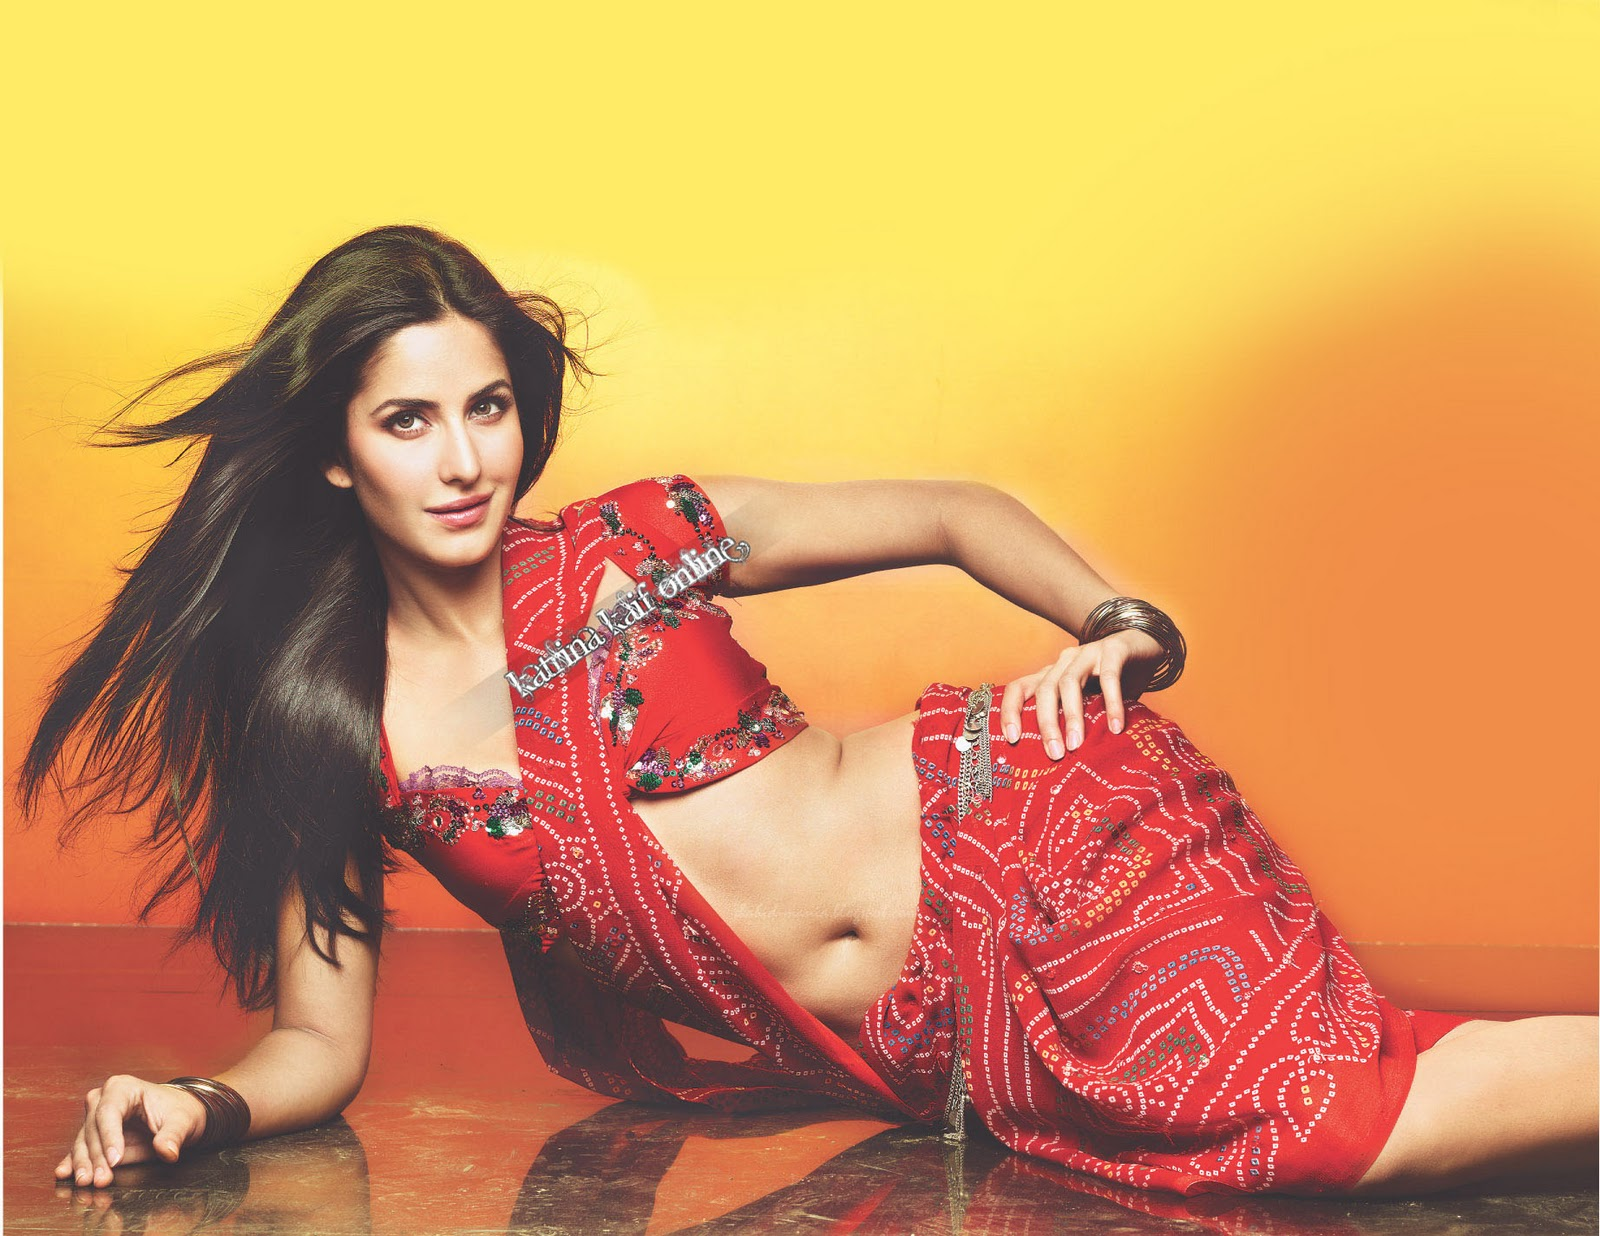 http://1.bp.blogspot.com/-5Bioy5eV-d8/TrO1ymp71OI/AAAAAAAAAdk/rc_sJLb1OA4/s1600/Katrina+Kaif+super+Navel+And+_+Body+in+TMK.jpg